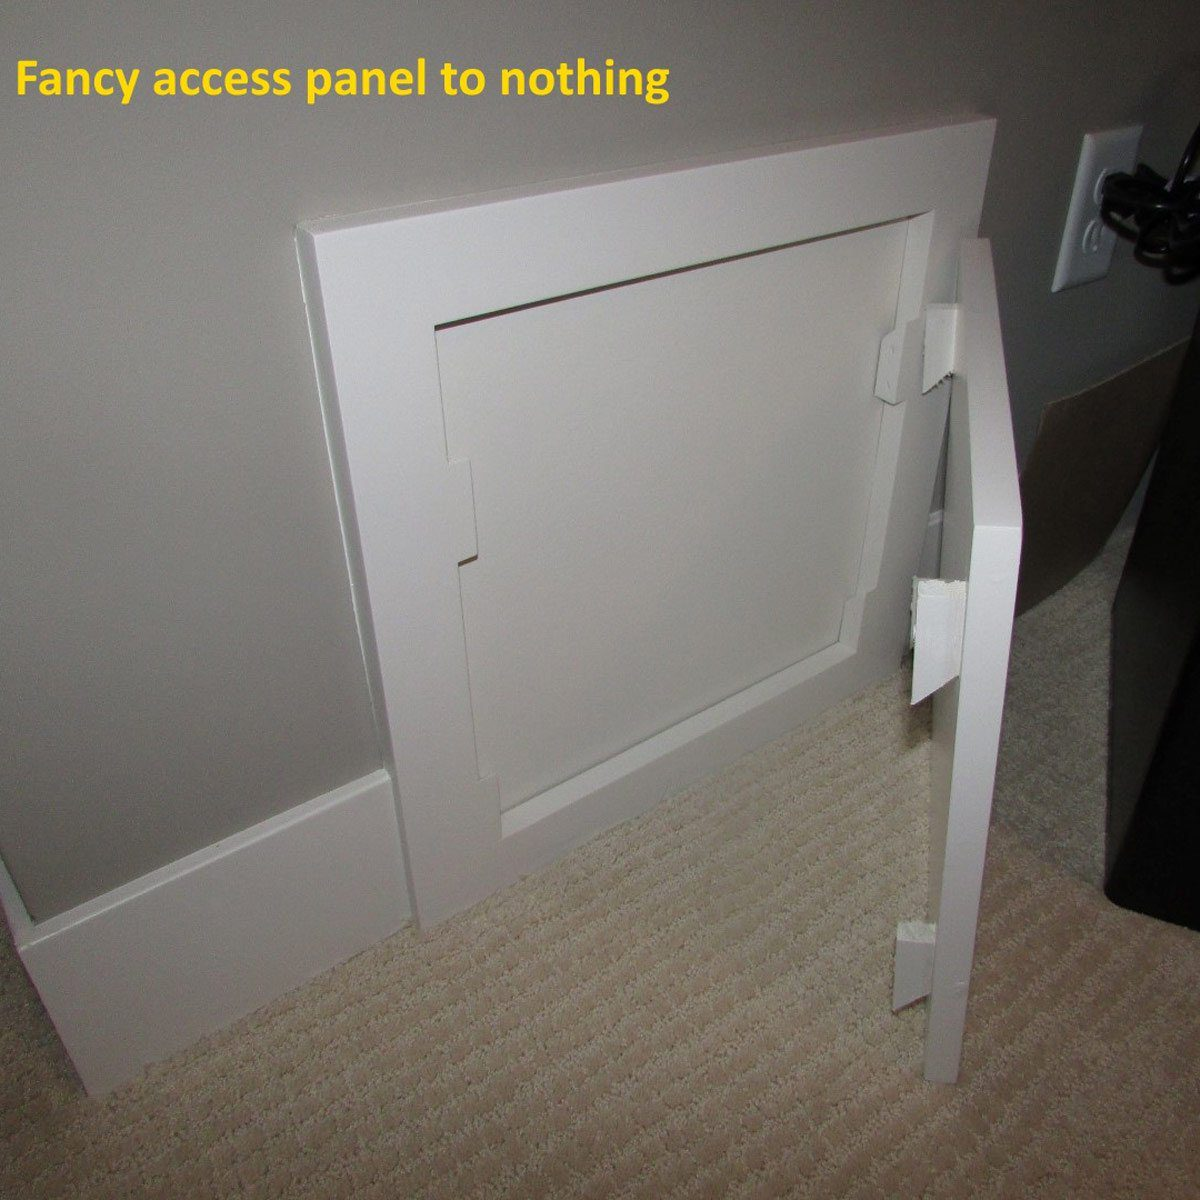 Fancy access panel to nothing